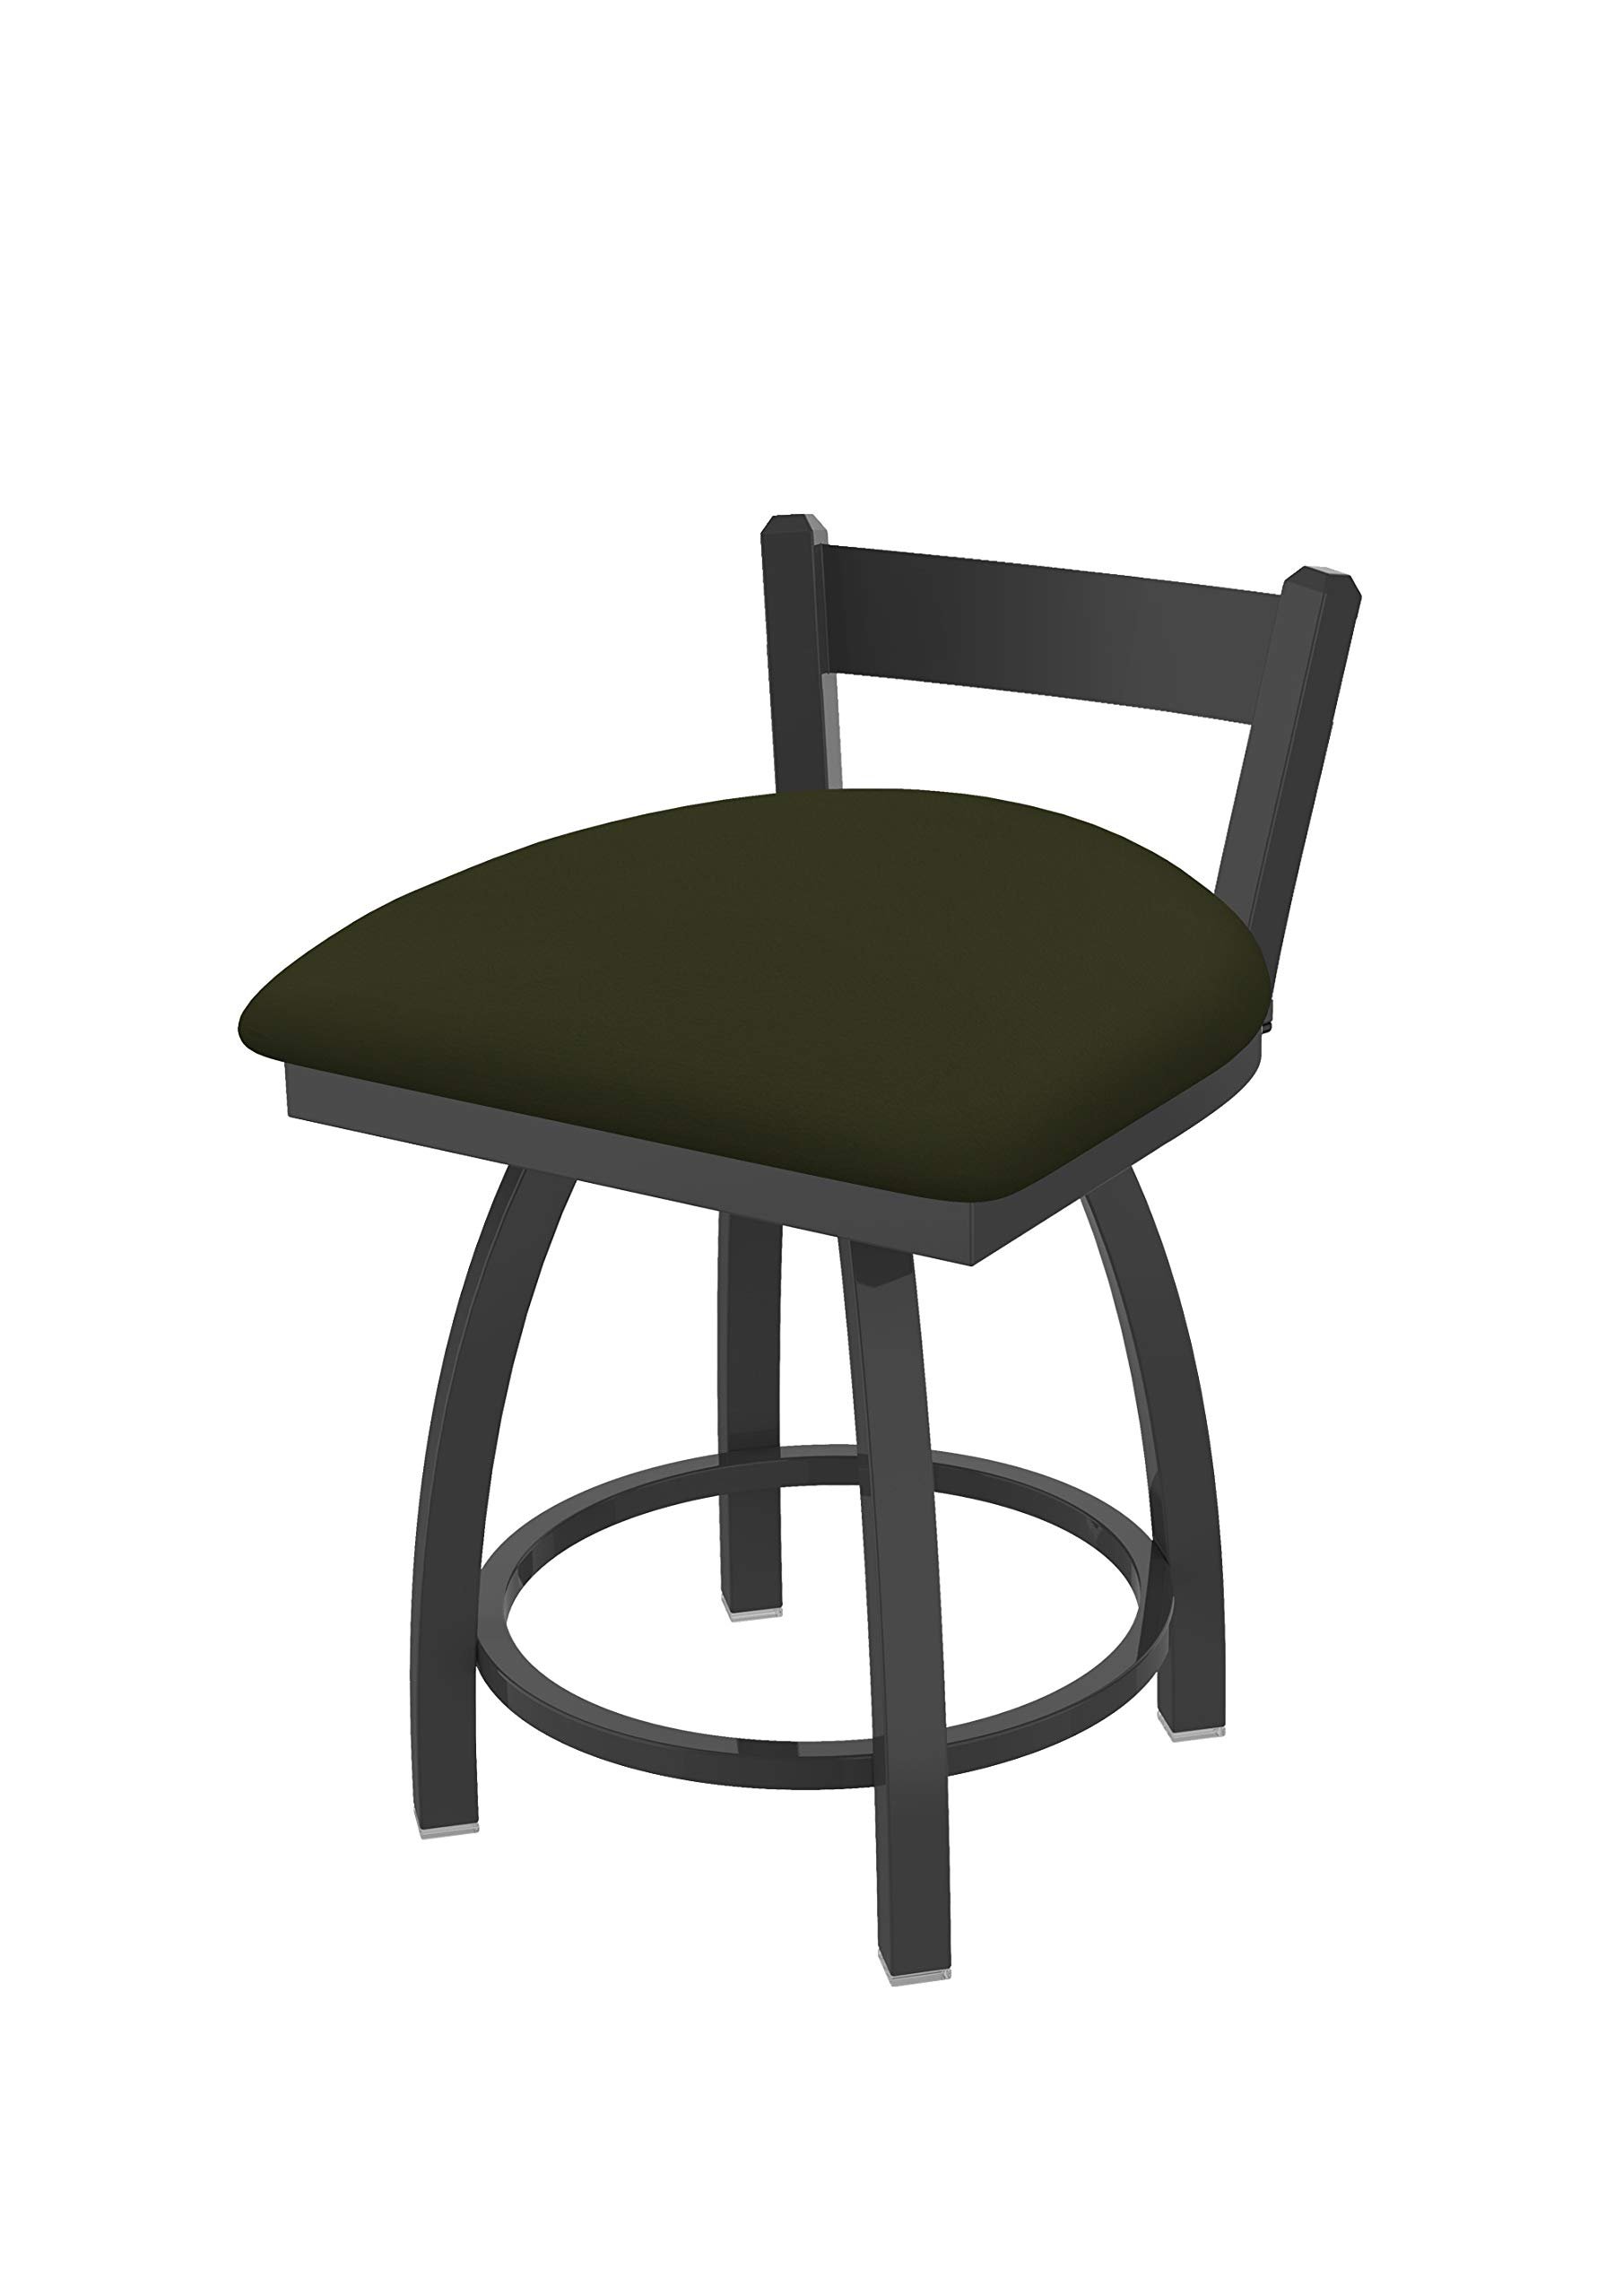 Holland Bar Stool Co. 82118PW010 821 Catalina 18'' Low Back Swivel Vanity Pewter Finish and Canter Pine Seat Bar Stool